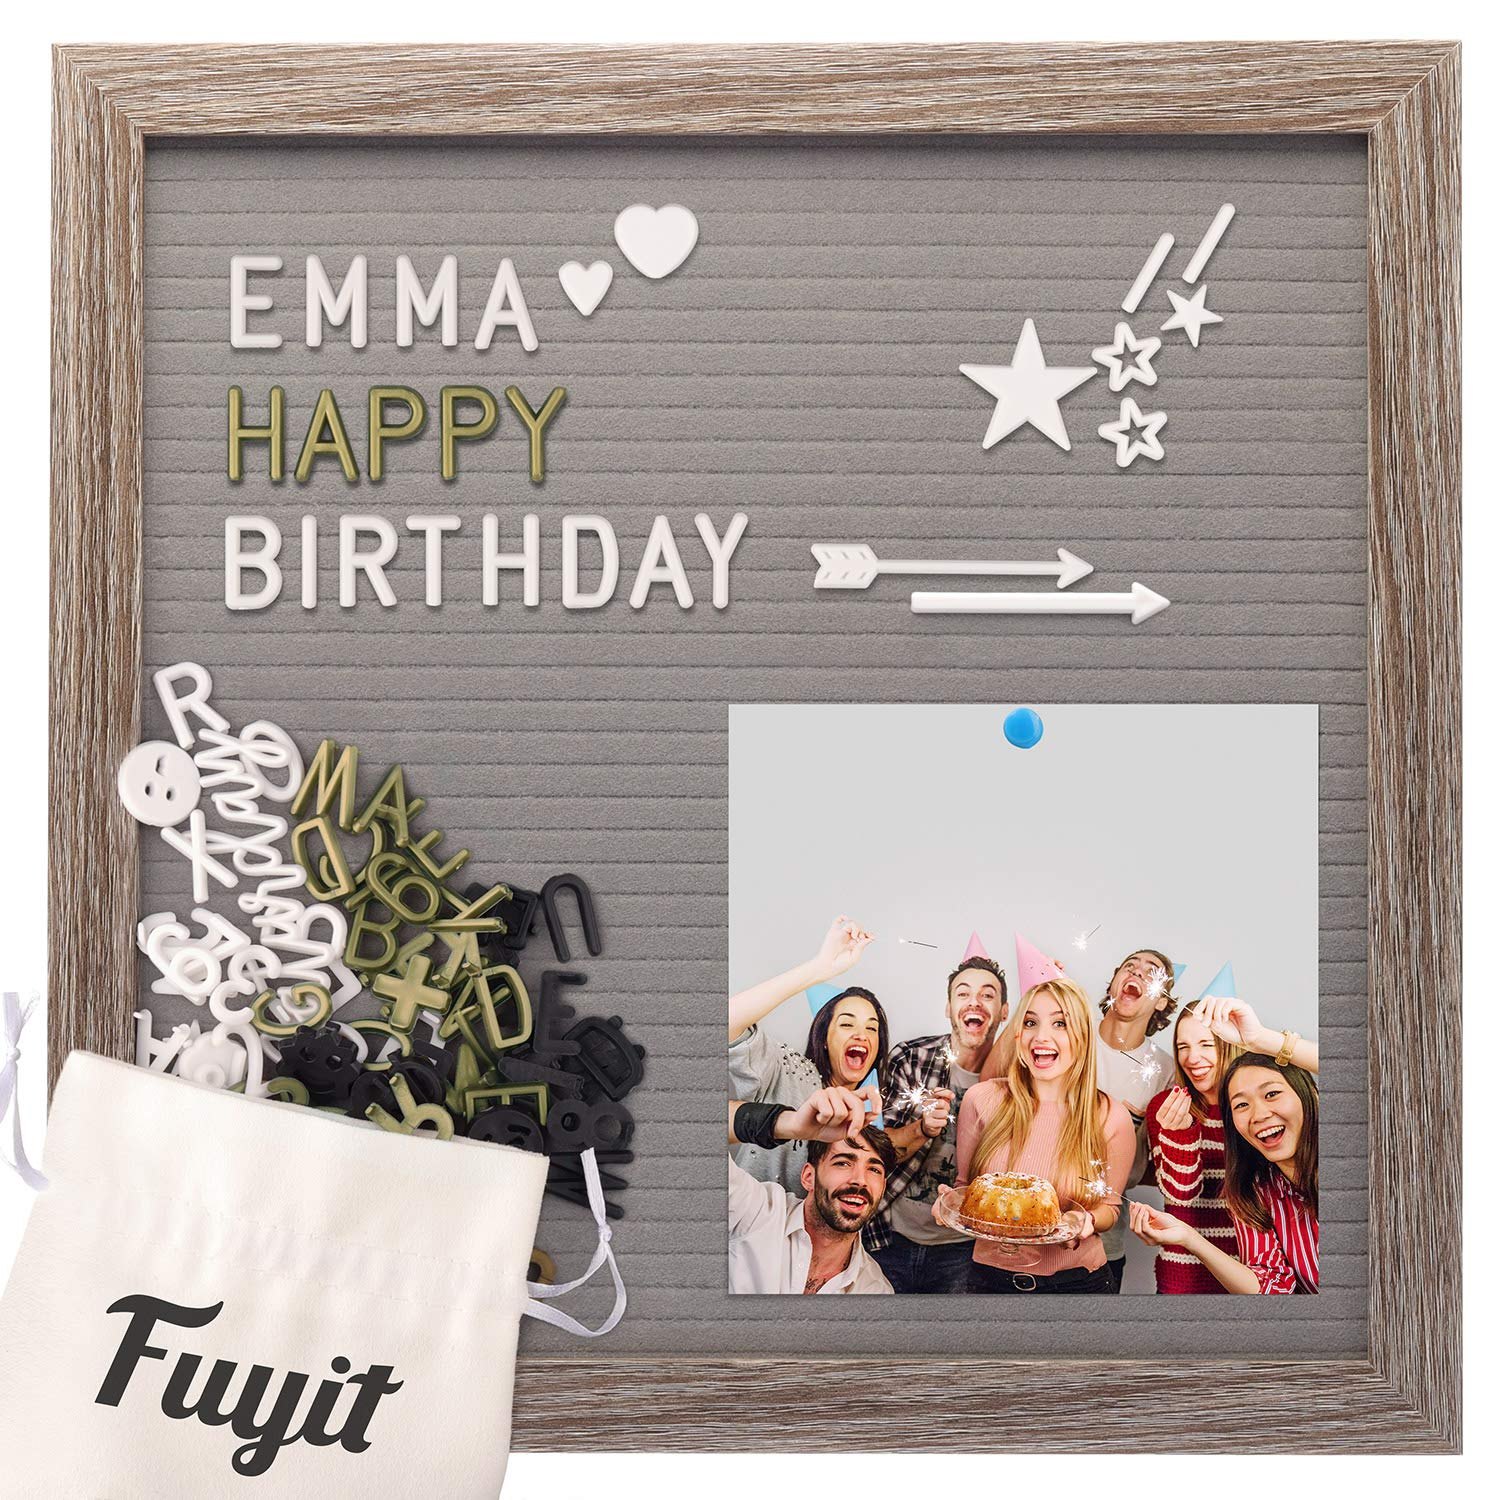 Felt Letter Board Message Sign 12x12, Gray EVA Letterboard for Photo Display, 600 Changeable Characters Announcement Board with Stand & Wall Hook, Original Wood Frame & Storage Bag by Fuyit